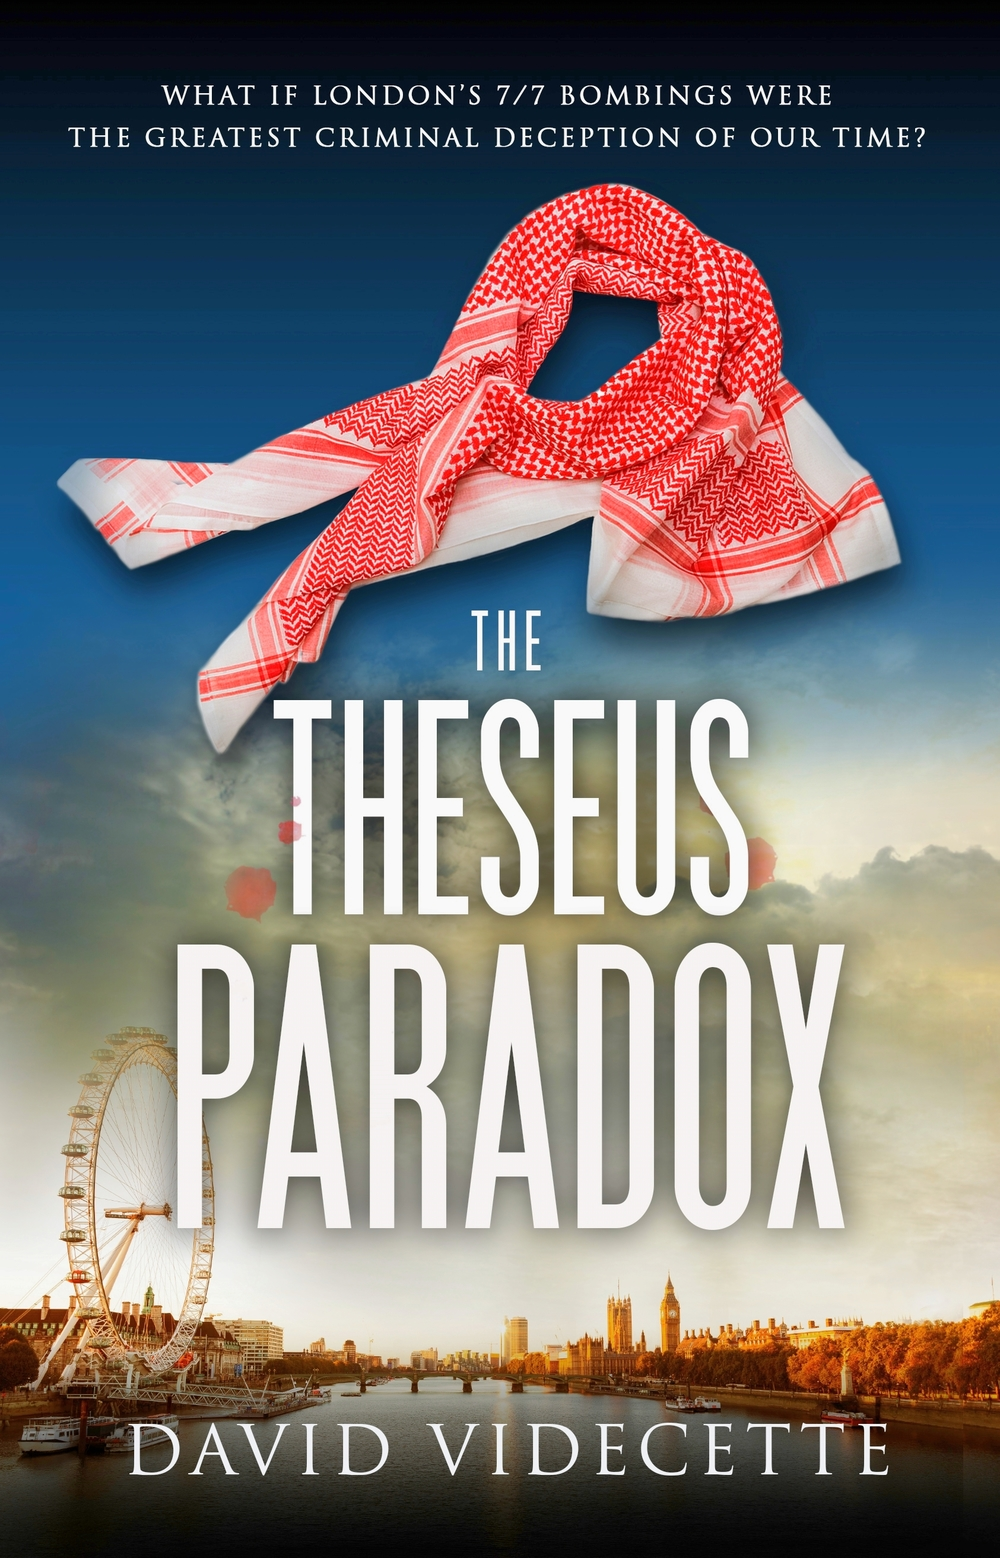 THE THESEUS PARADOX KINDLE COVER.jpg